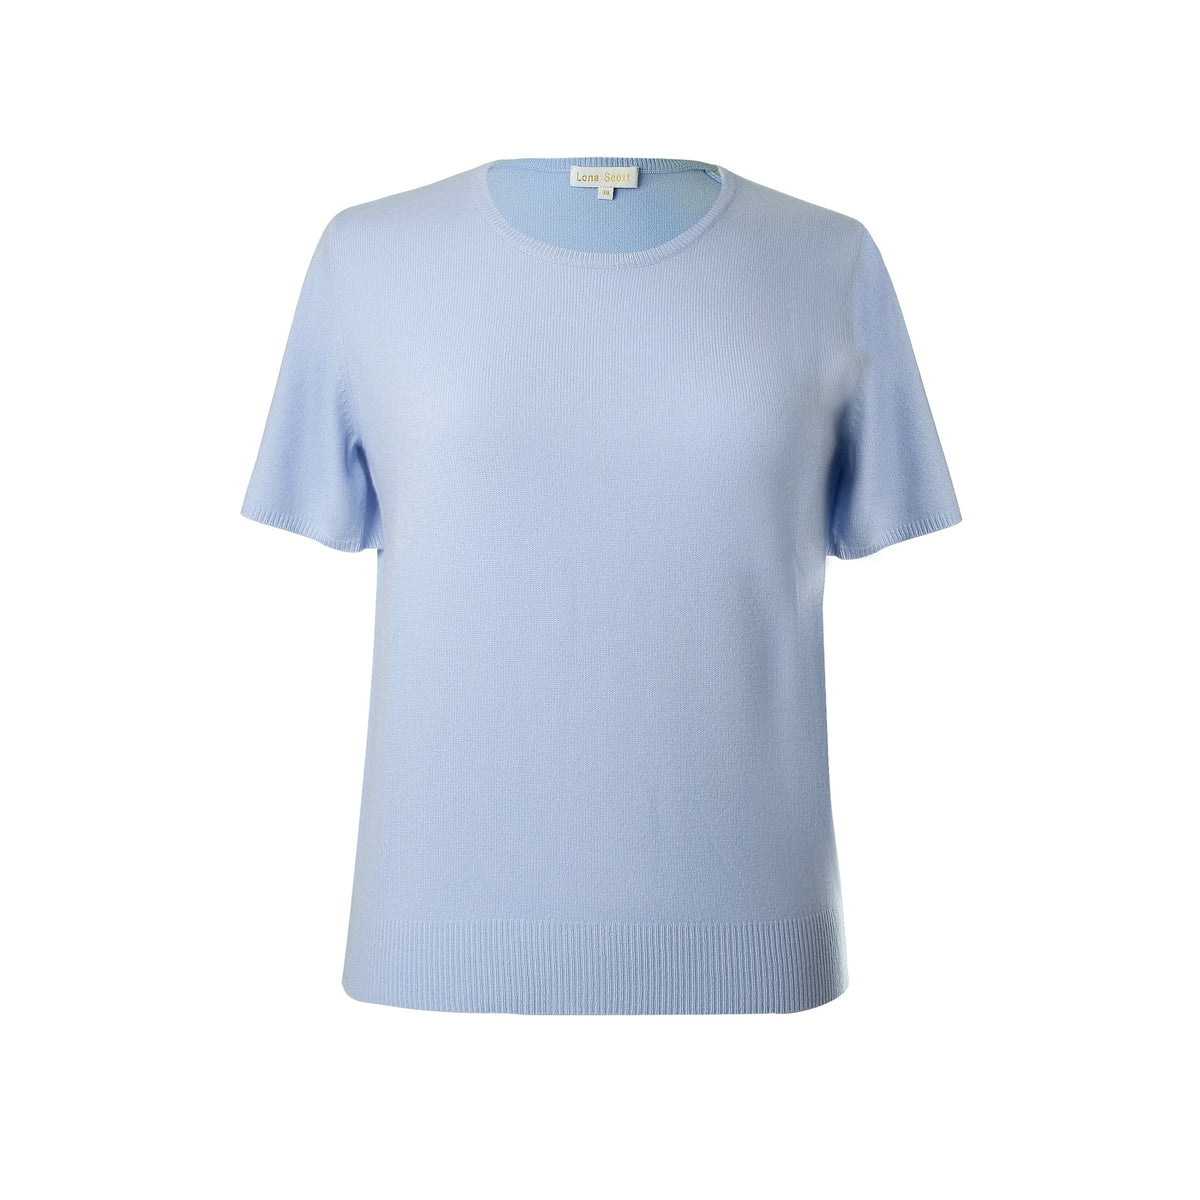 Ladies Sky Blue Cashmere Sweater | Short Sleeve | The Cashmere Choice London